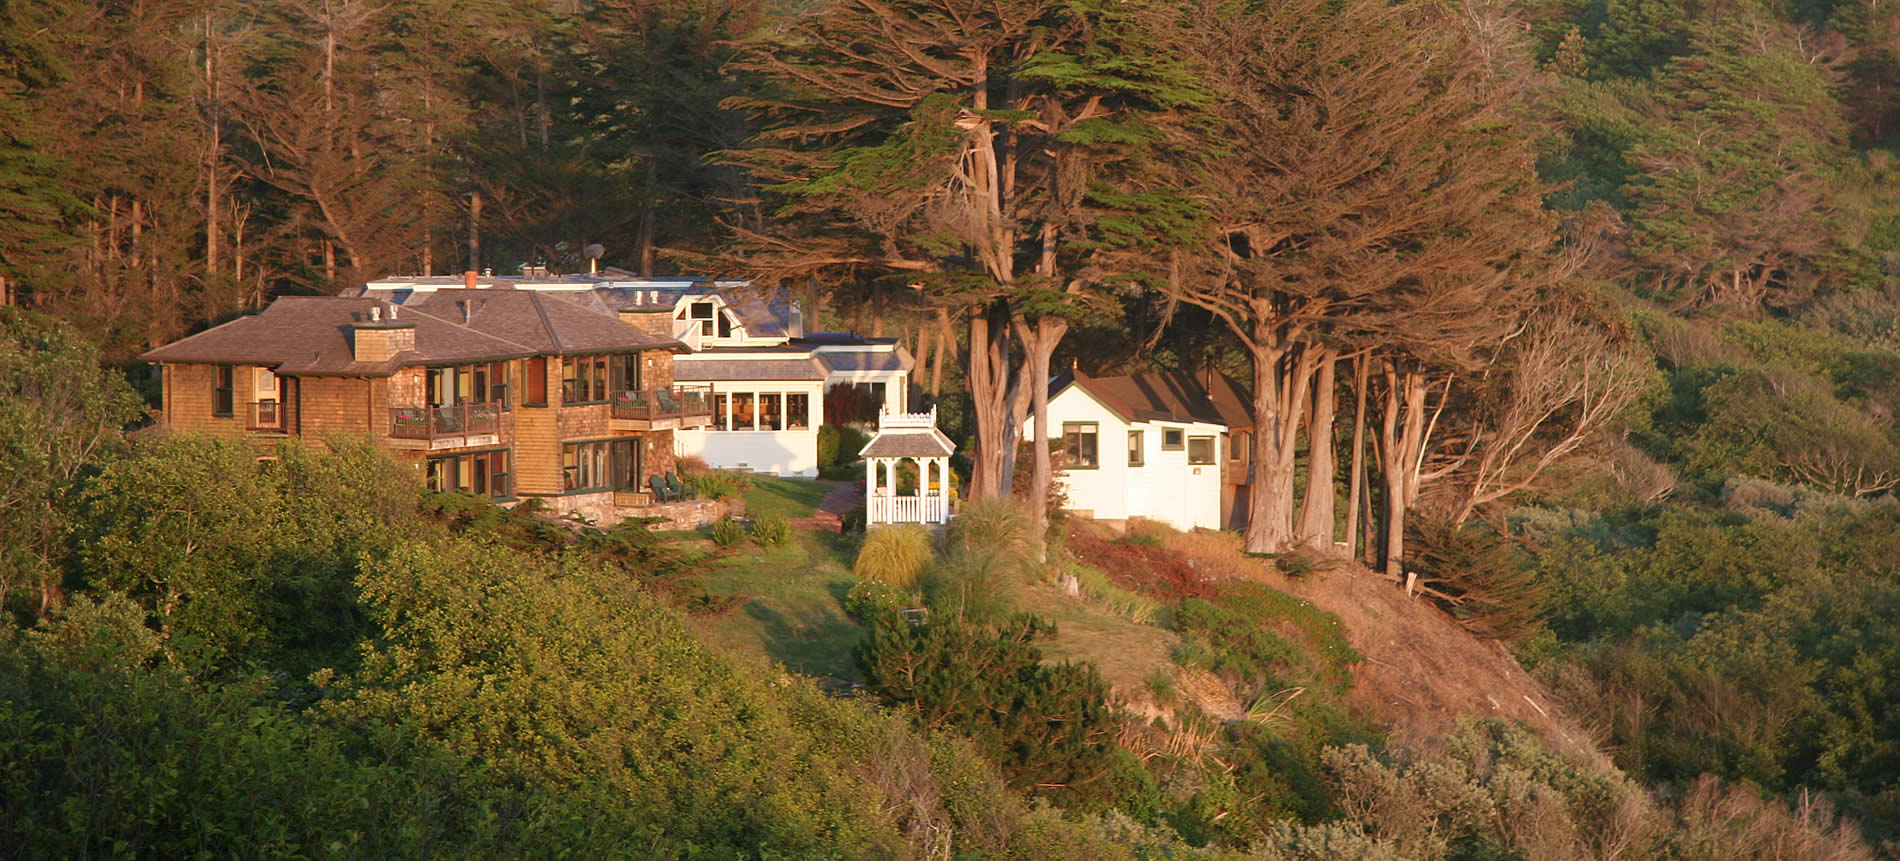 elk cove inn oceanfront bed and breakfast